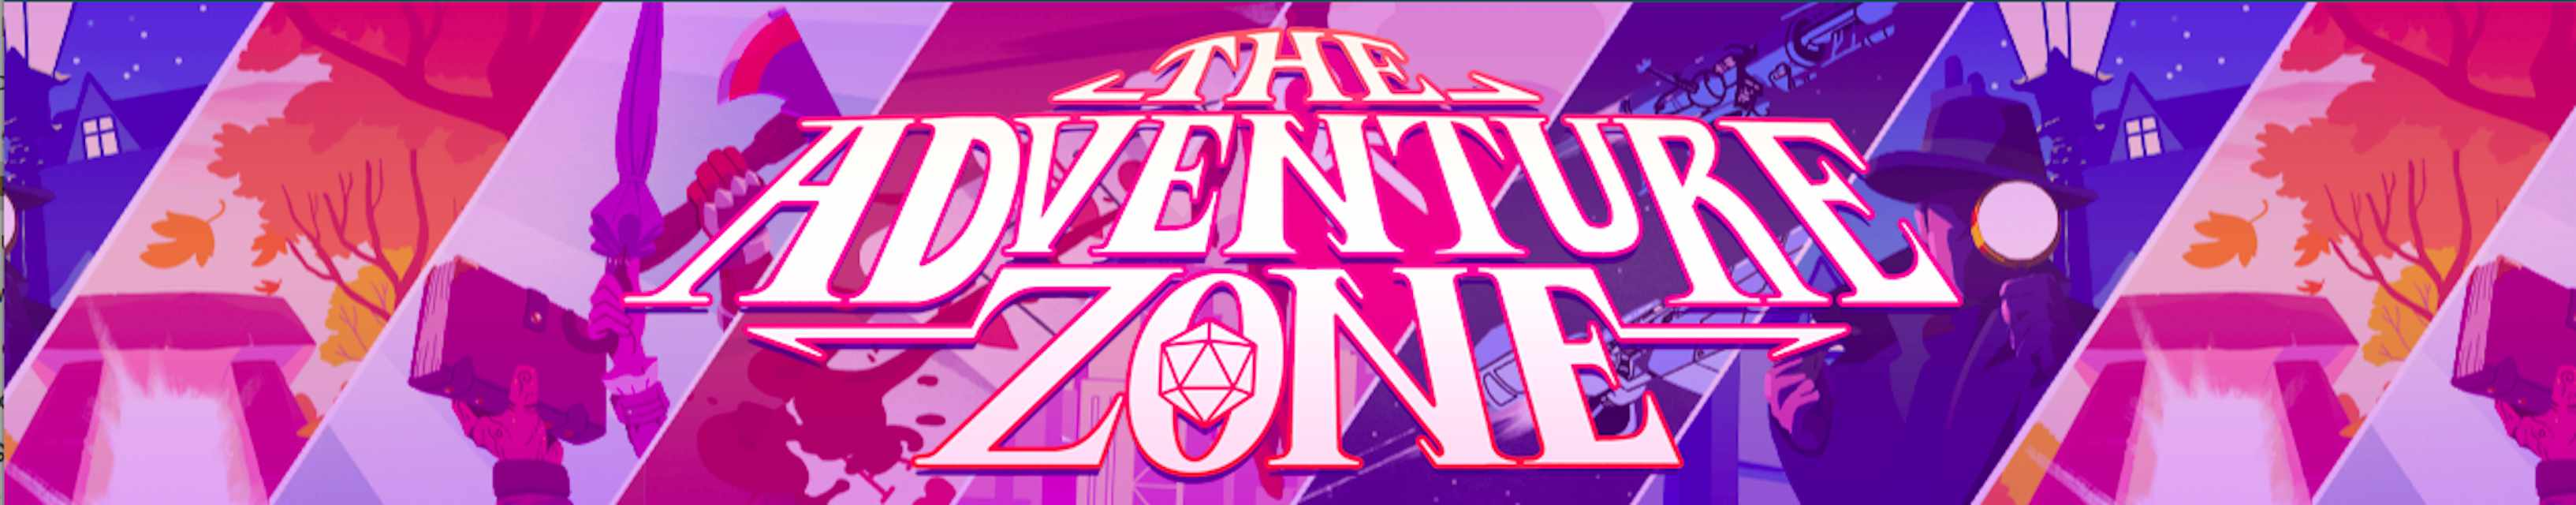 Header art for The Adventure Zone featuring illustrated scenes from games that they've played.